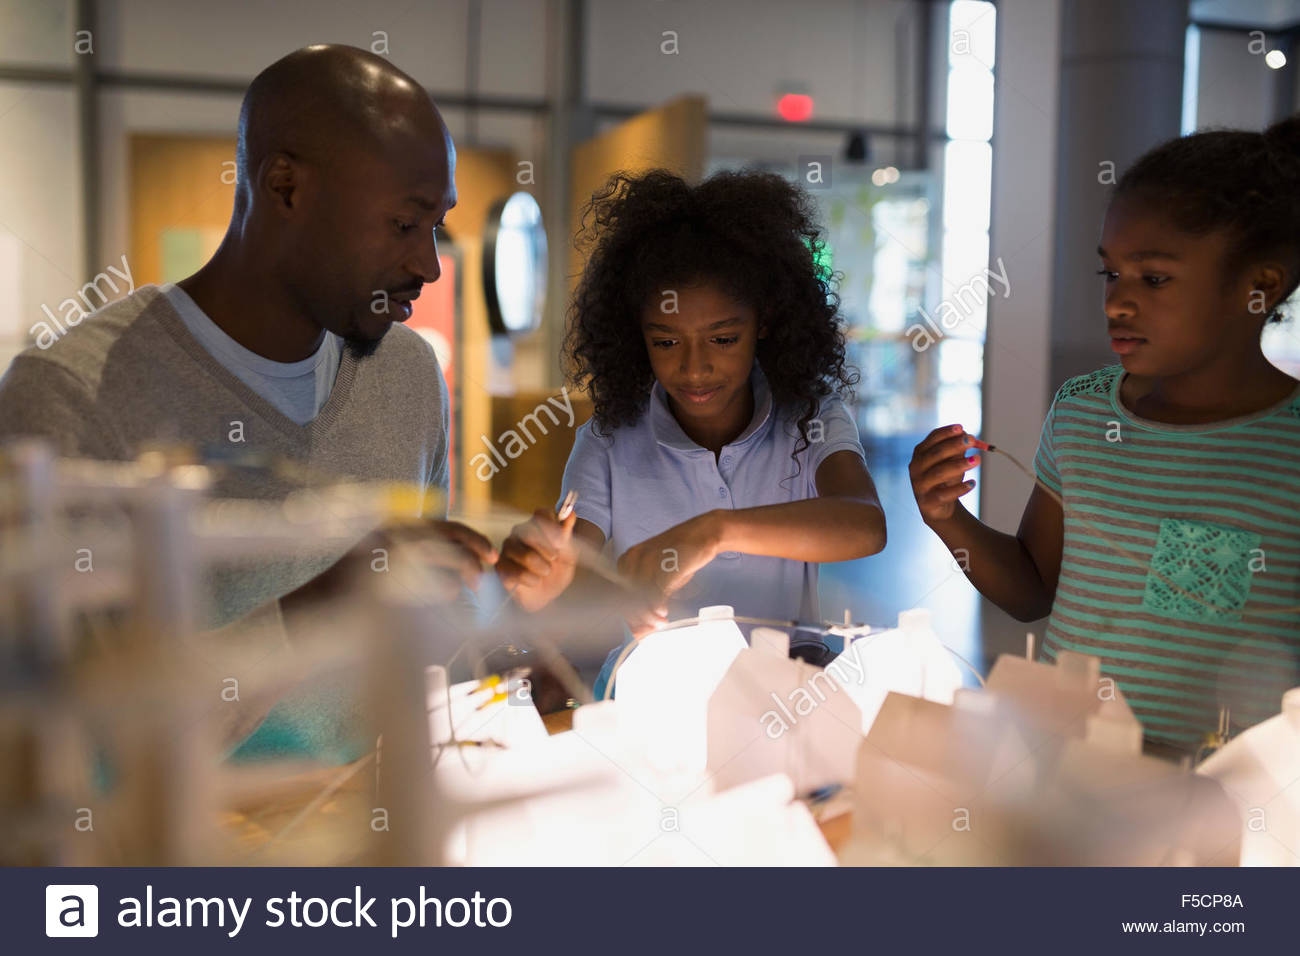 Father and daughters playing electricity grid science center - Stock Image